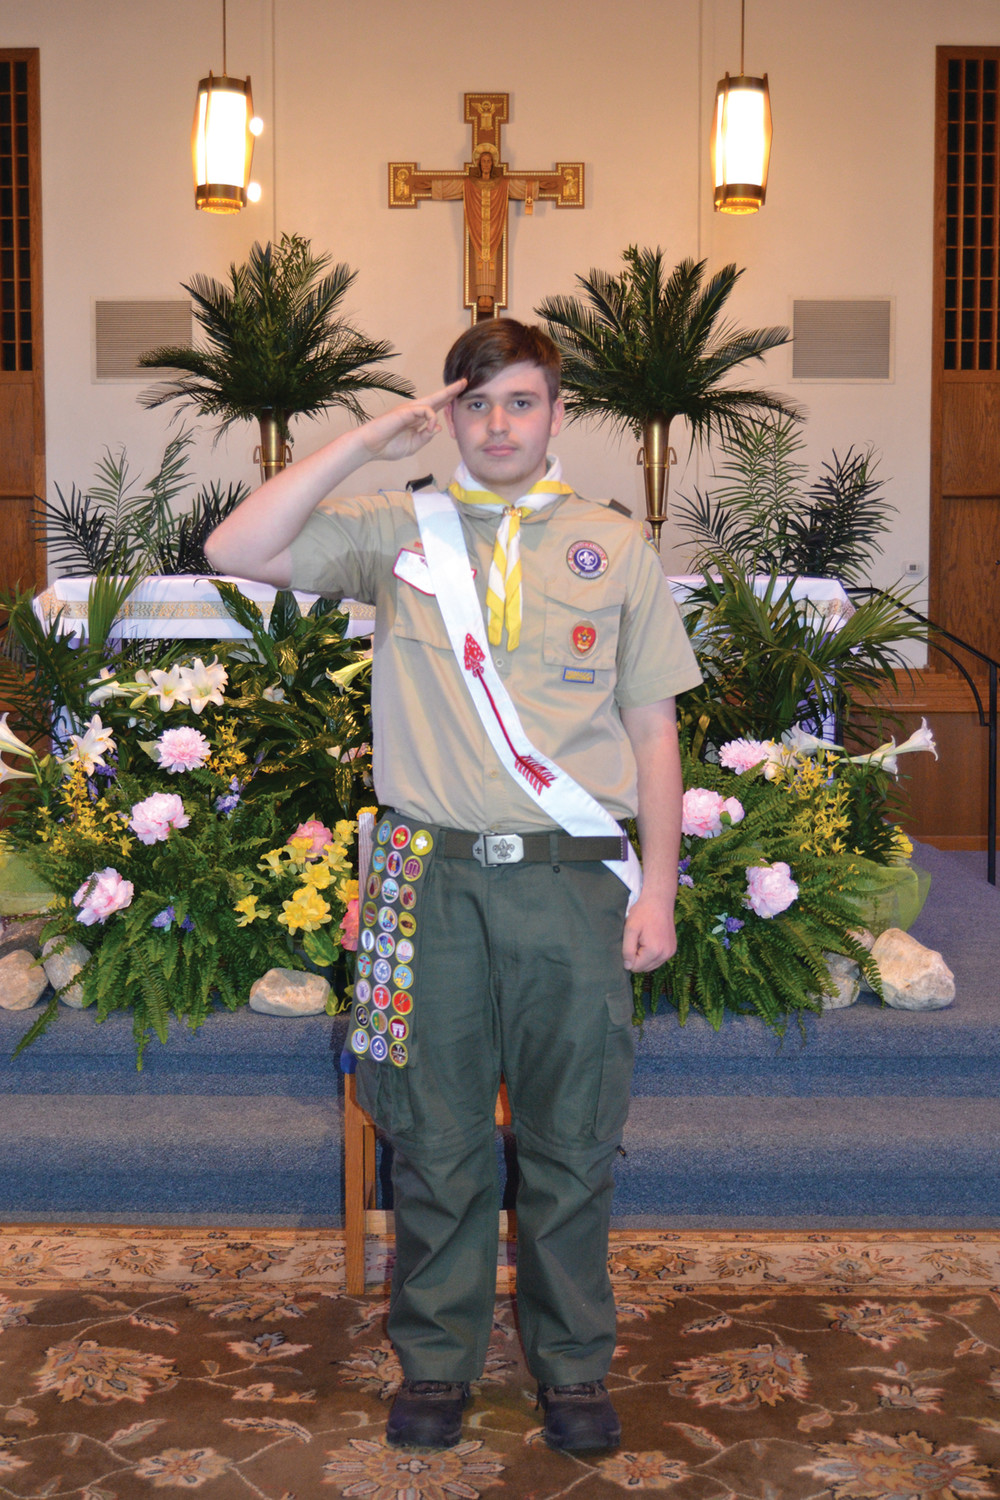 SCOUT SALUTE: Newly inducted Eagle Scout Patrick Young of Troop 20 Johnston leads his troop during his Eagle Scout celebration last Sunday.